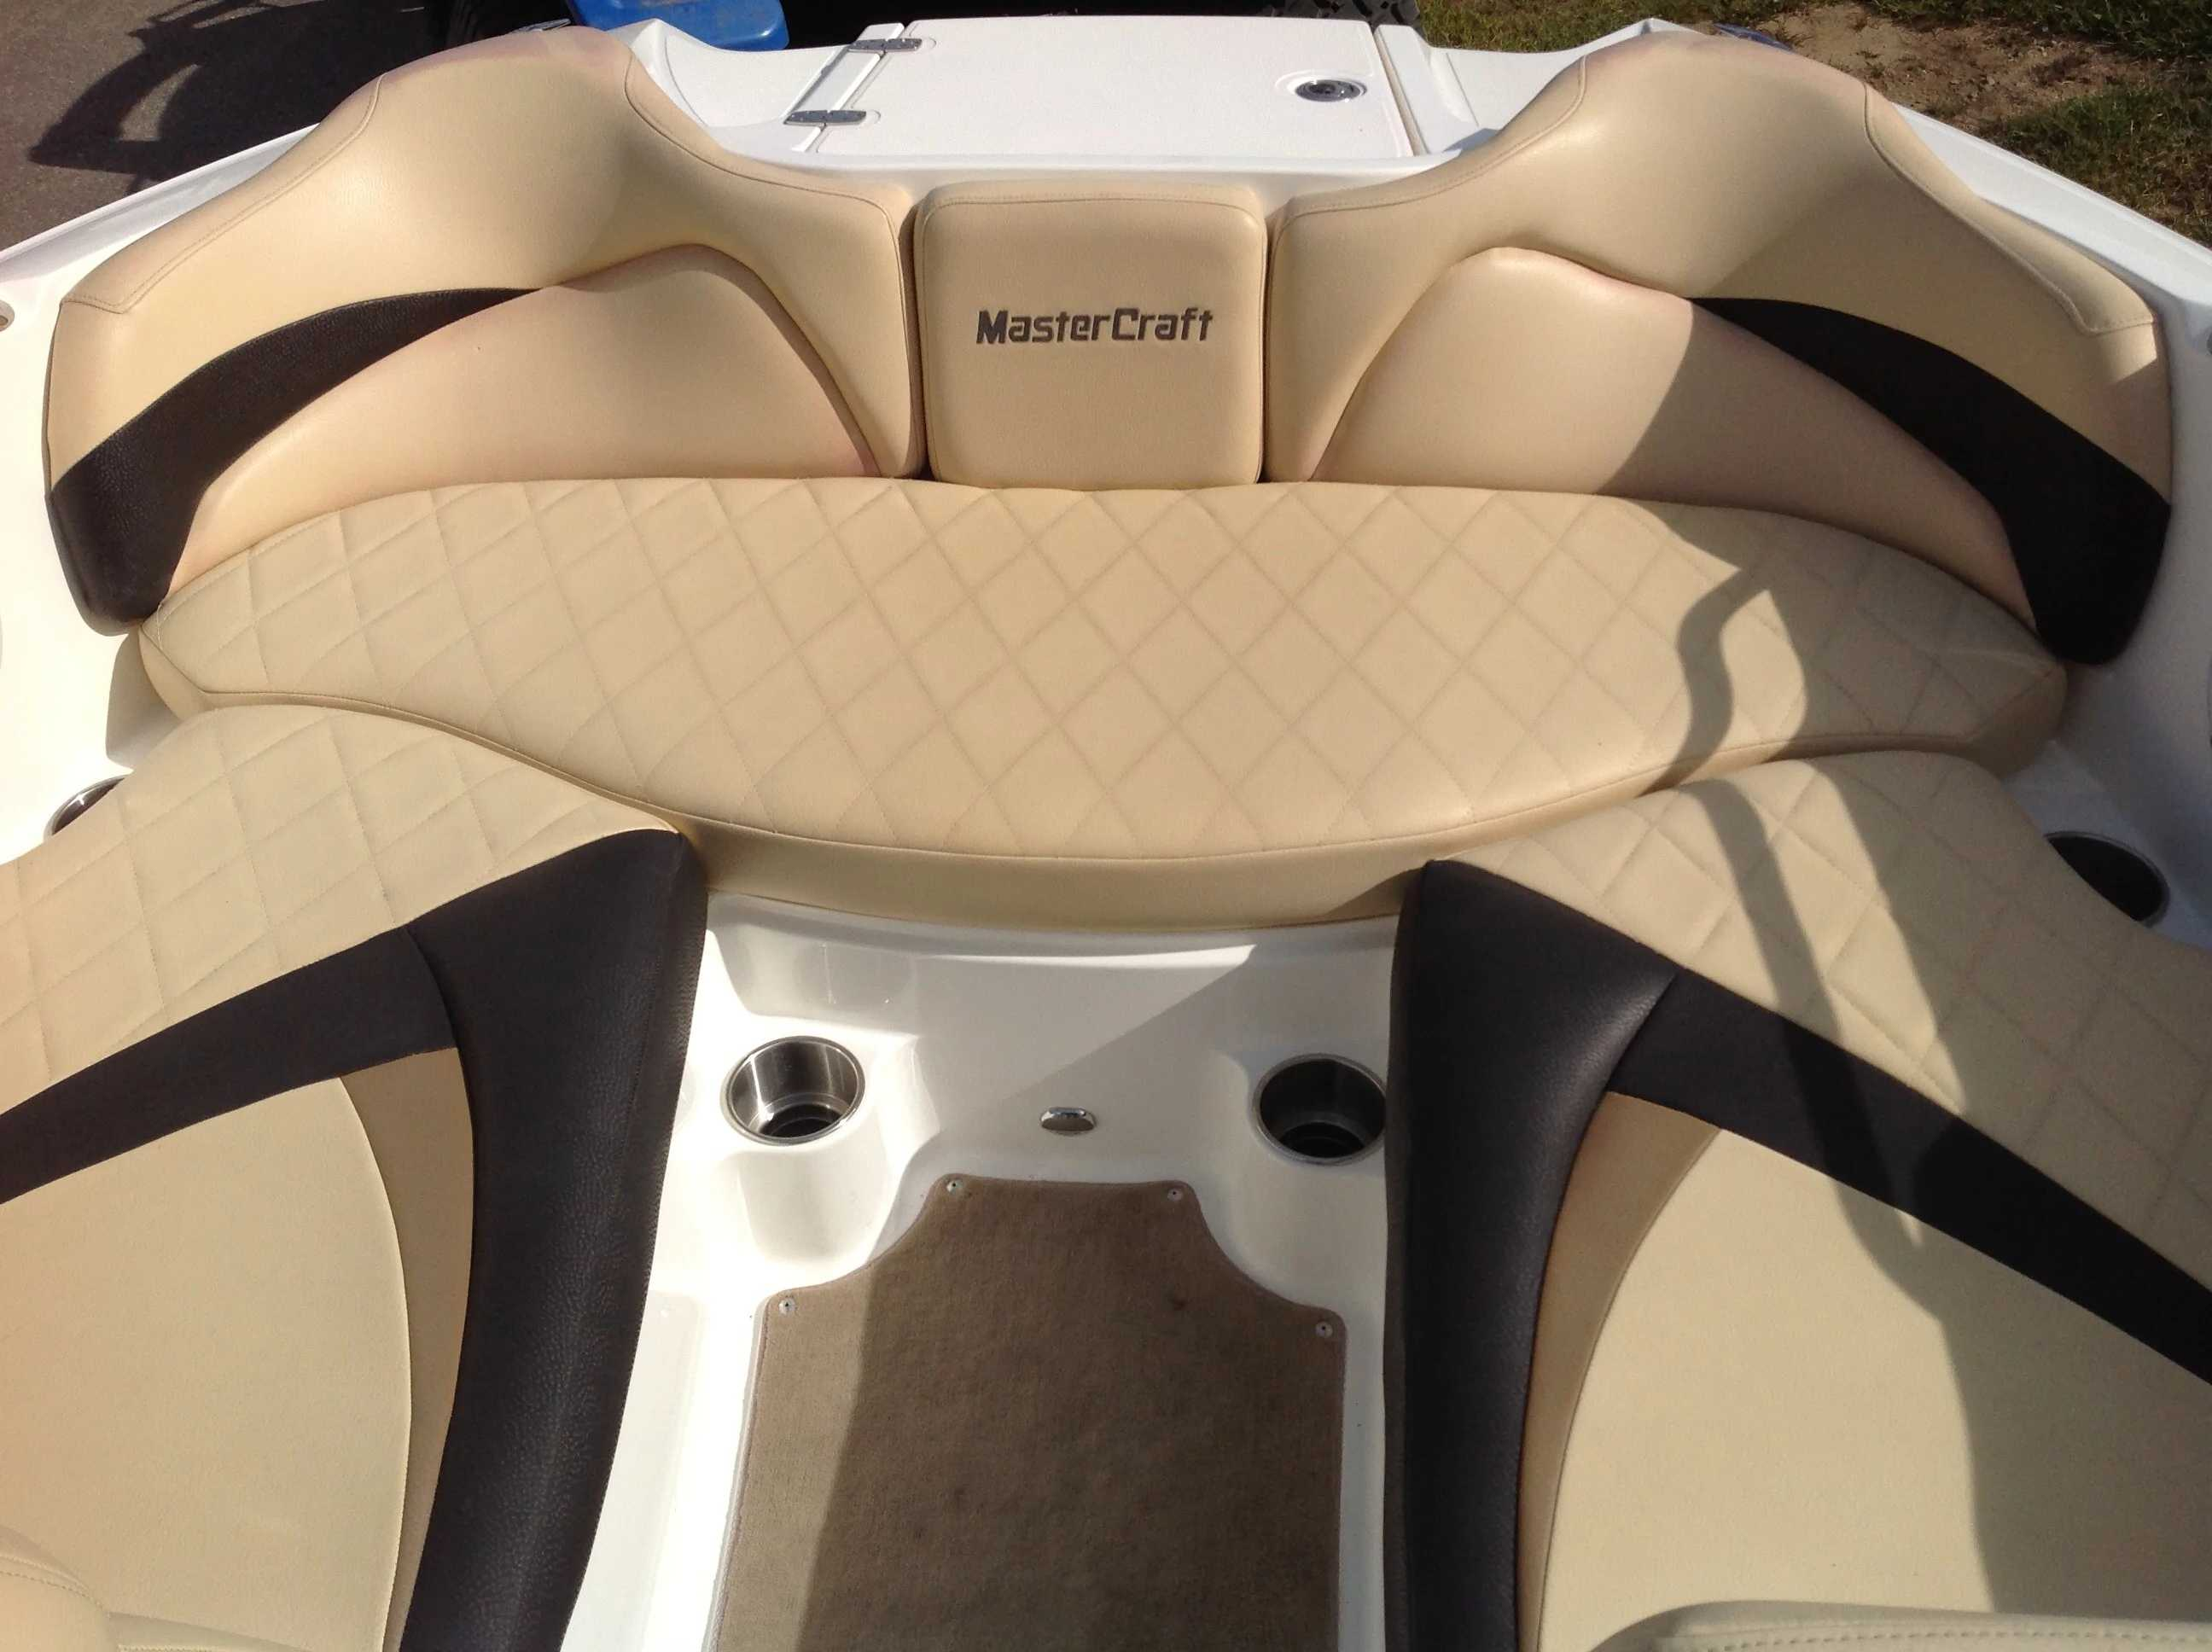 2010 Mastercraft boat for sale, model of the boat is Maristar 235 & Image # 3 of 16